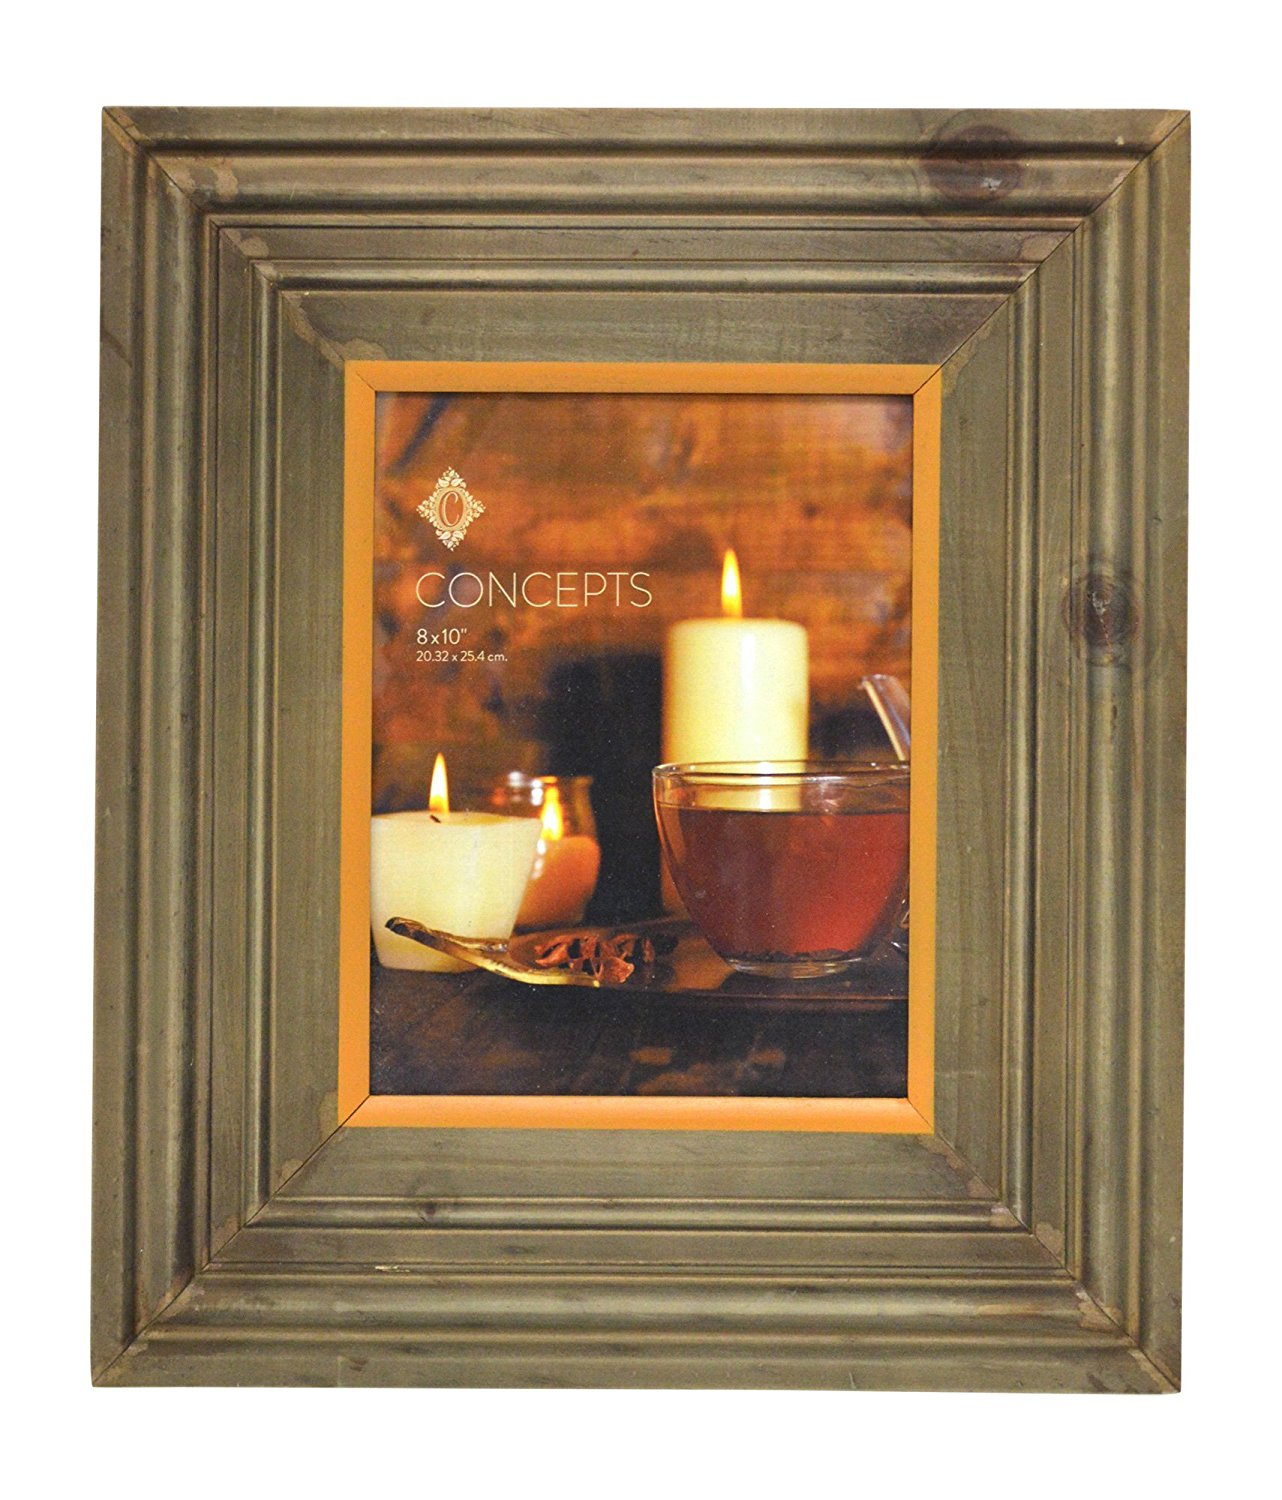 Cheap Picture Frame 3 8x10, find Picture Frame 3 8x10 deals on line ...